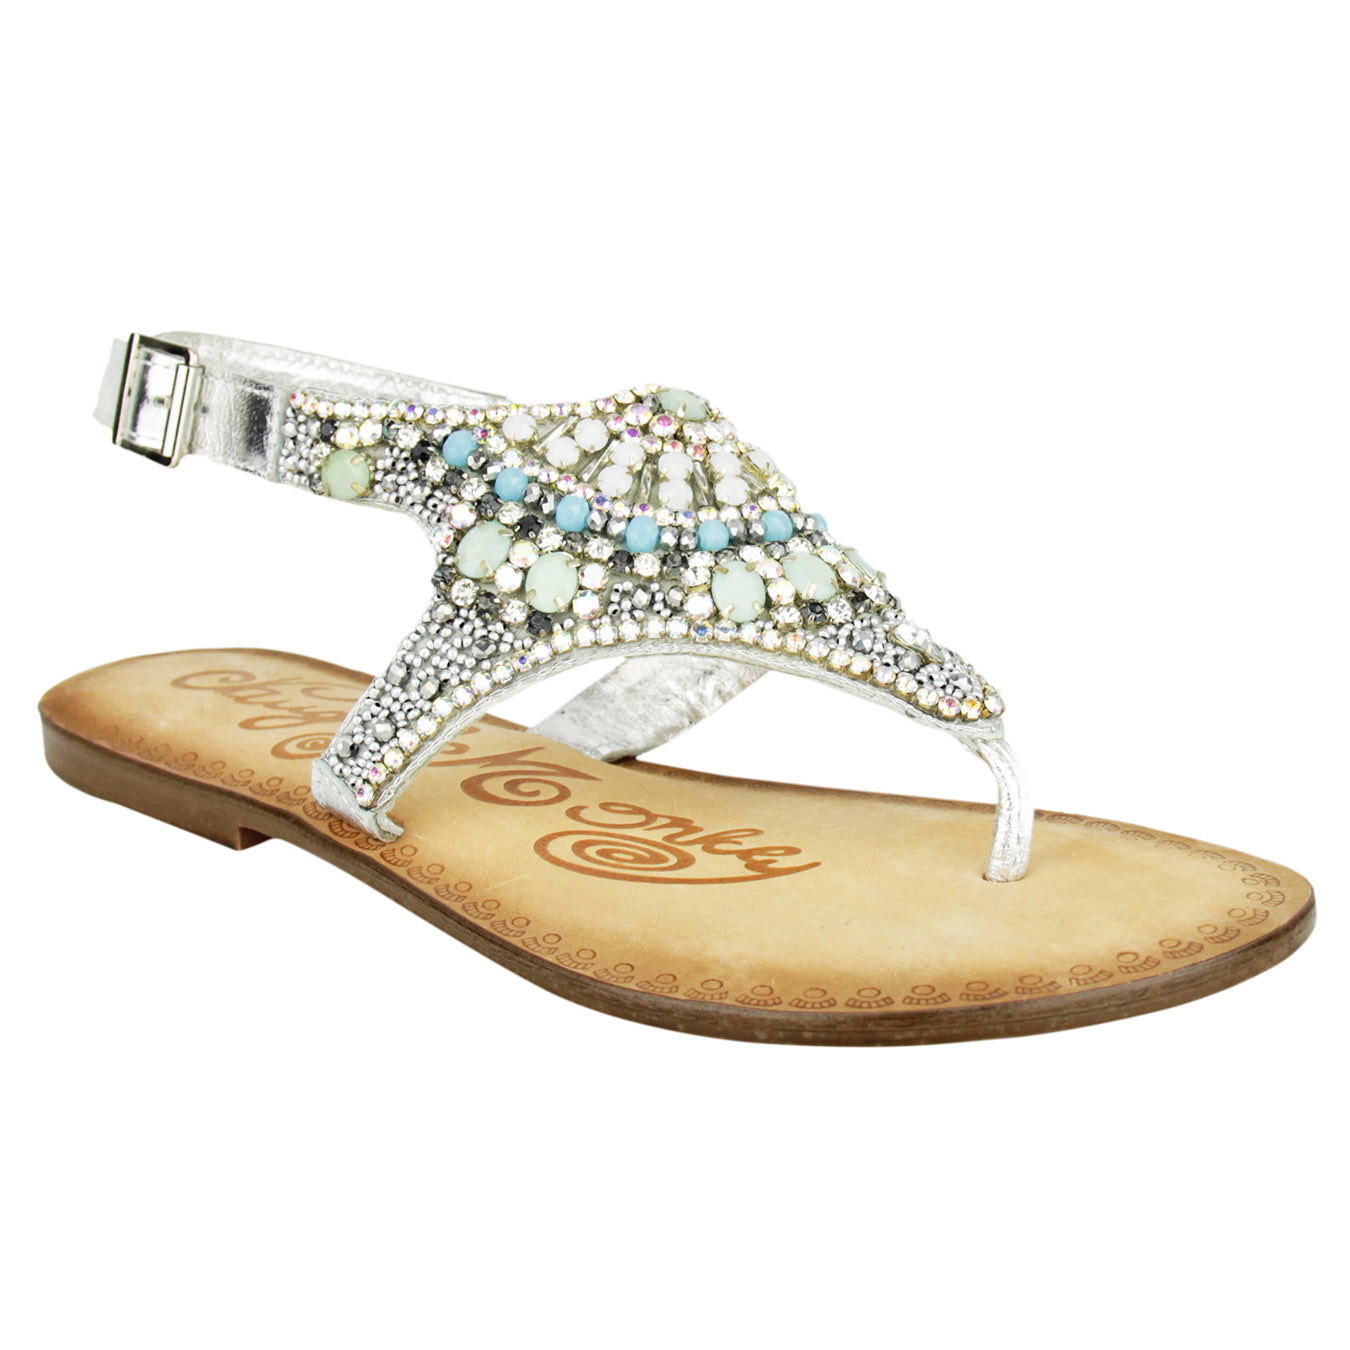 naughty_monkey_sandal_women_thong_sling_back_embellished_beaded_ice_berg_silver